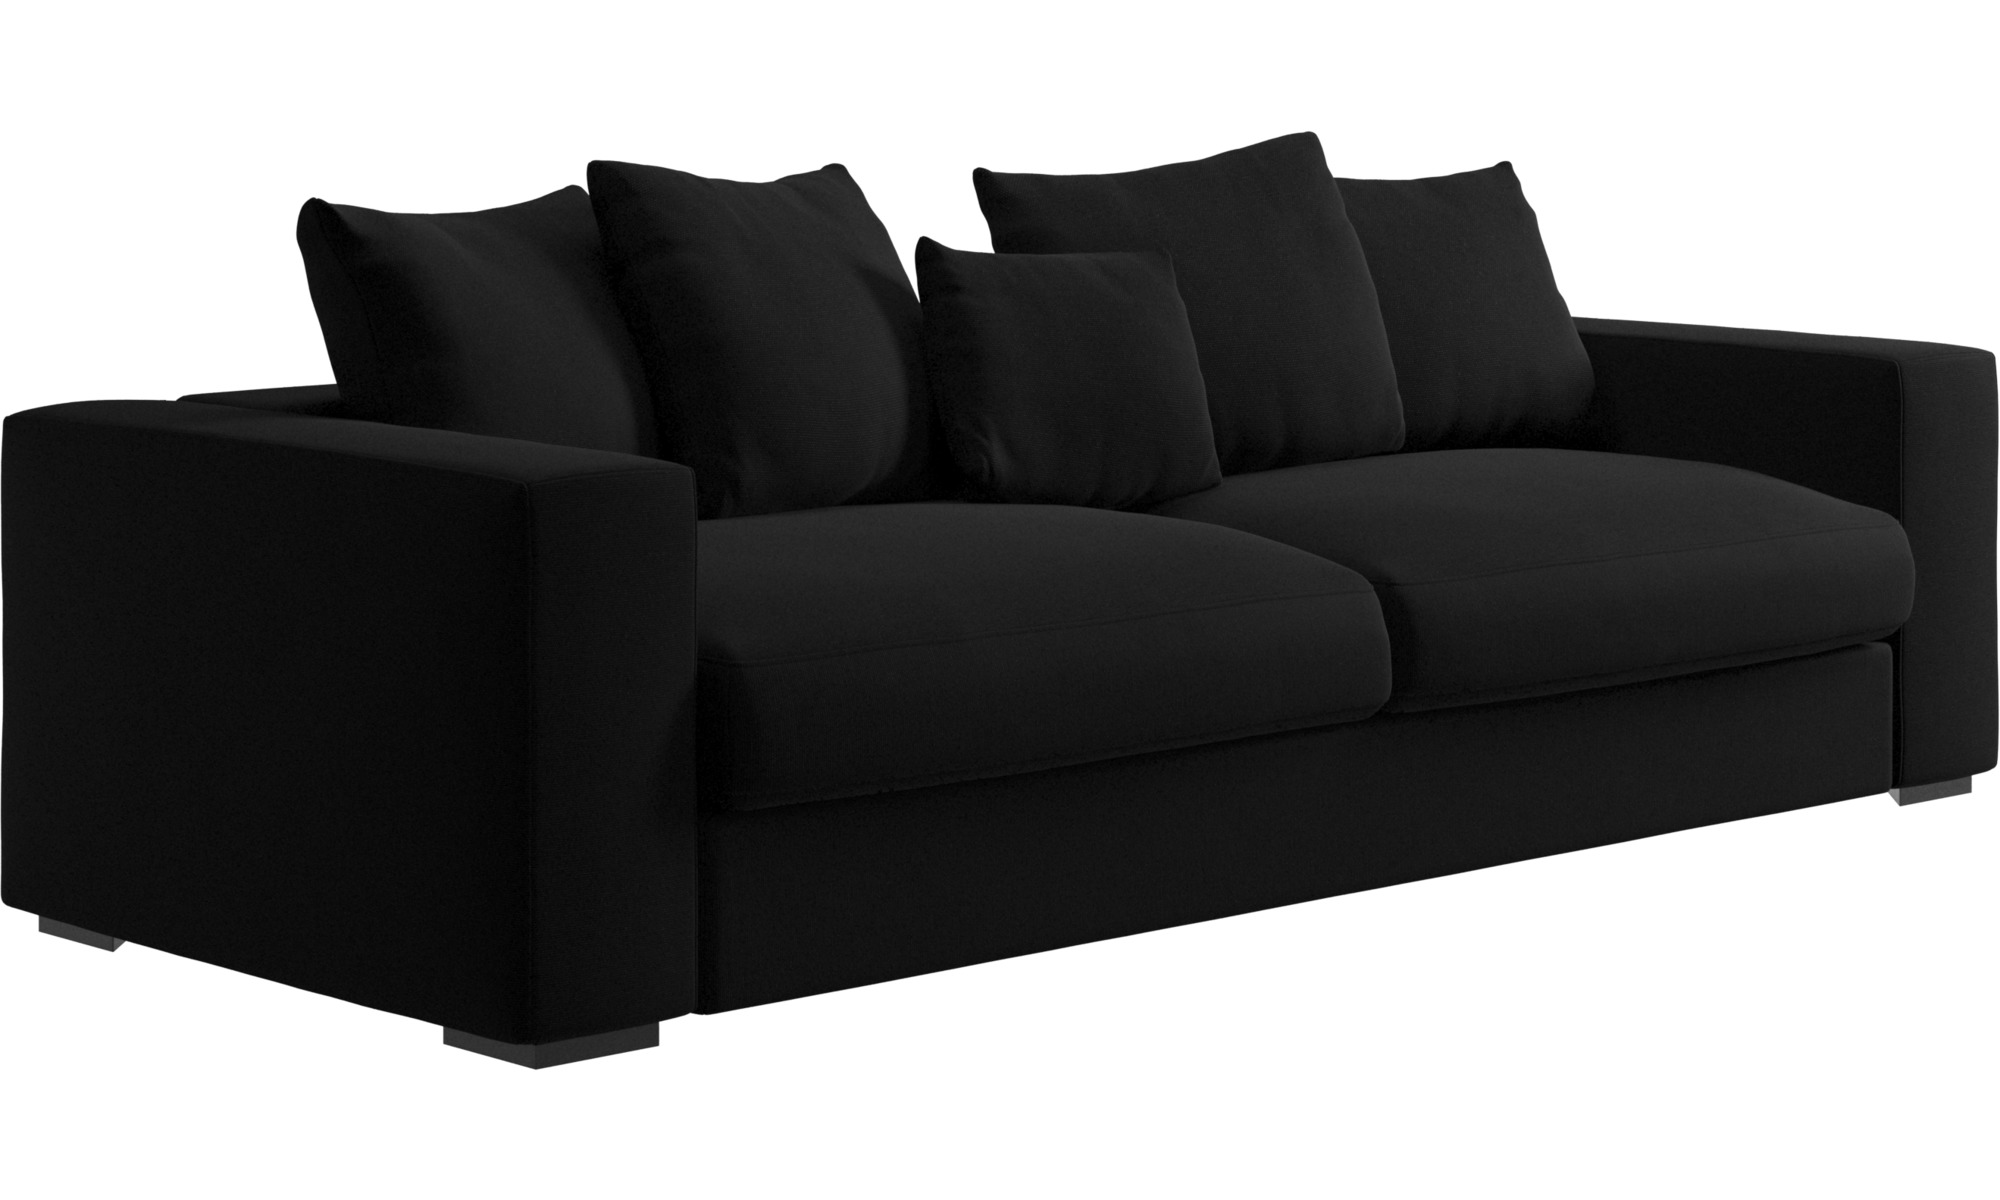 sofa cenova sofa boconcept. Black Bedroom Furniture Sets. Home Design Ideas